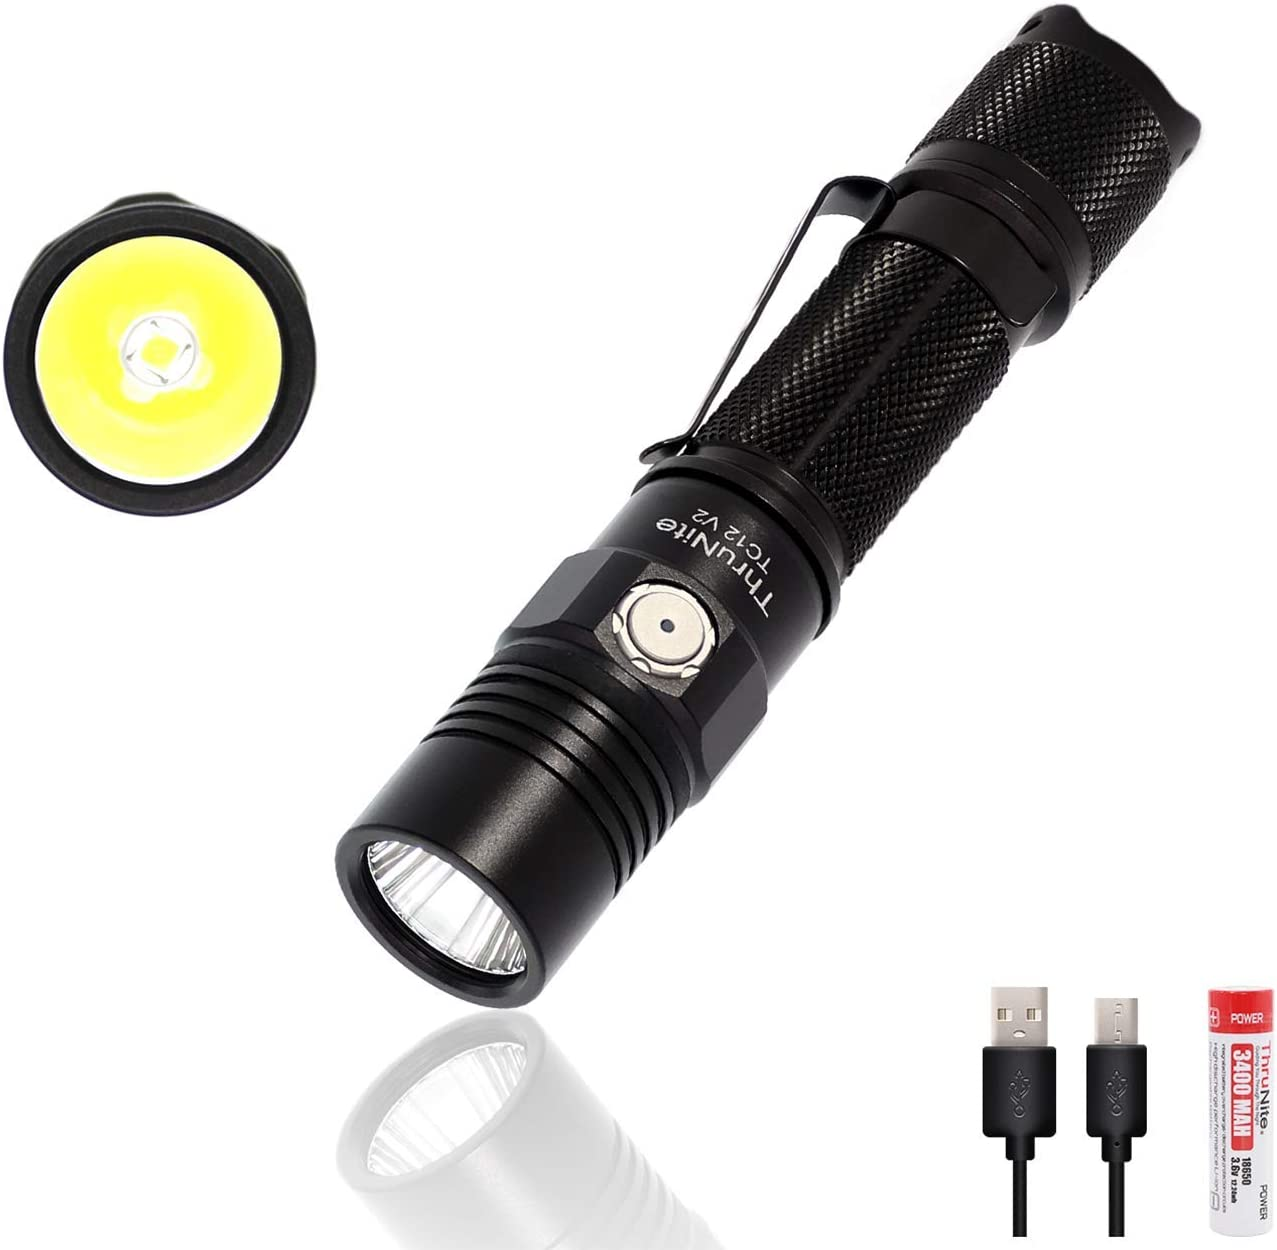 Firefly LED 60 Lumen Tactical Water Resistant Camping Hiking Torch